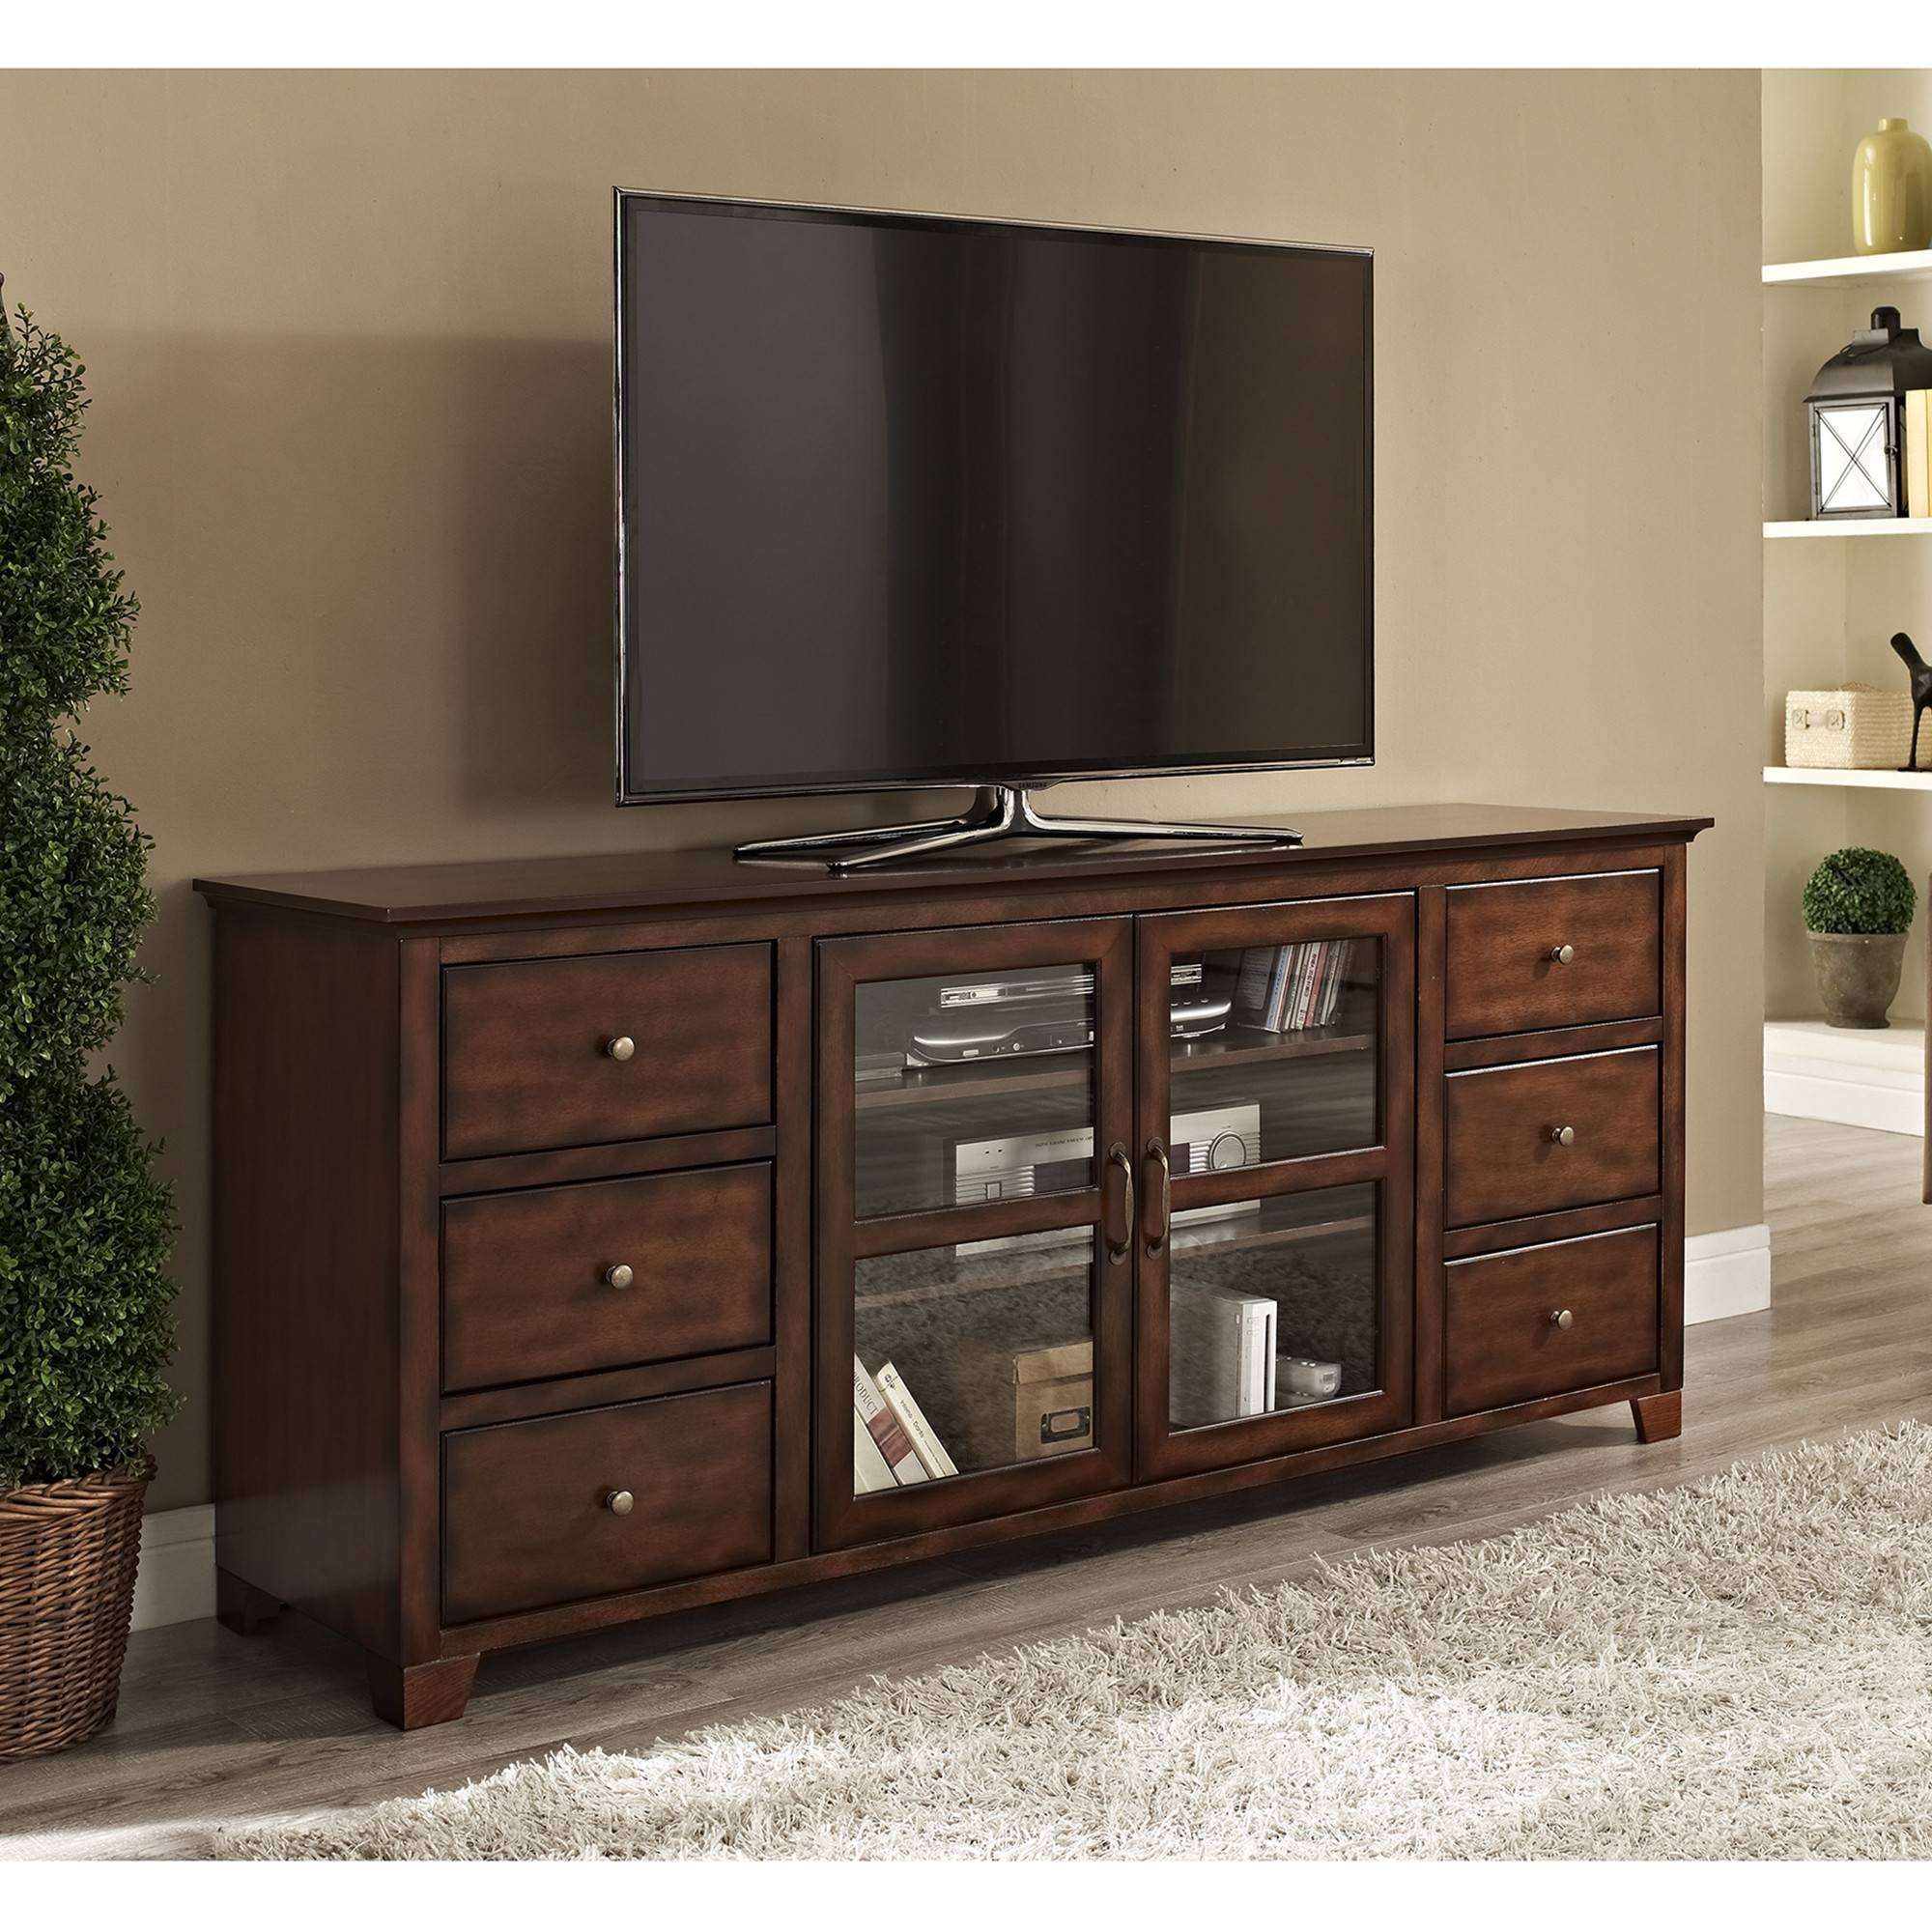 Furniture. The Modern Tv Stands For Flat Screens For More Secure inside Wide Screen Tv Stands (Image 9 of 15)